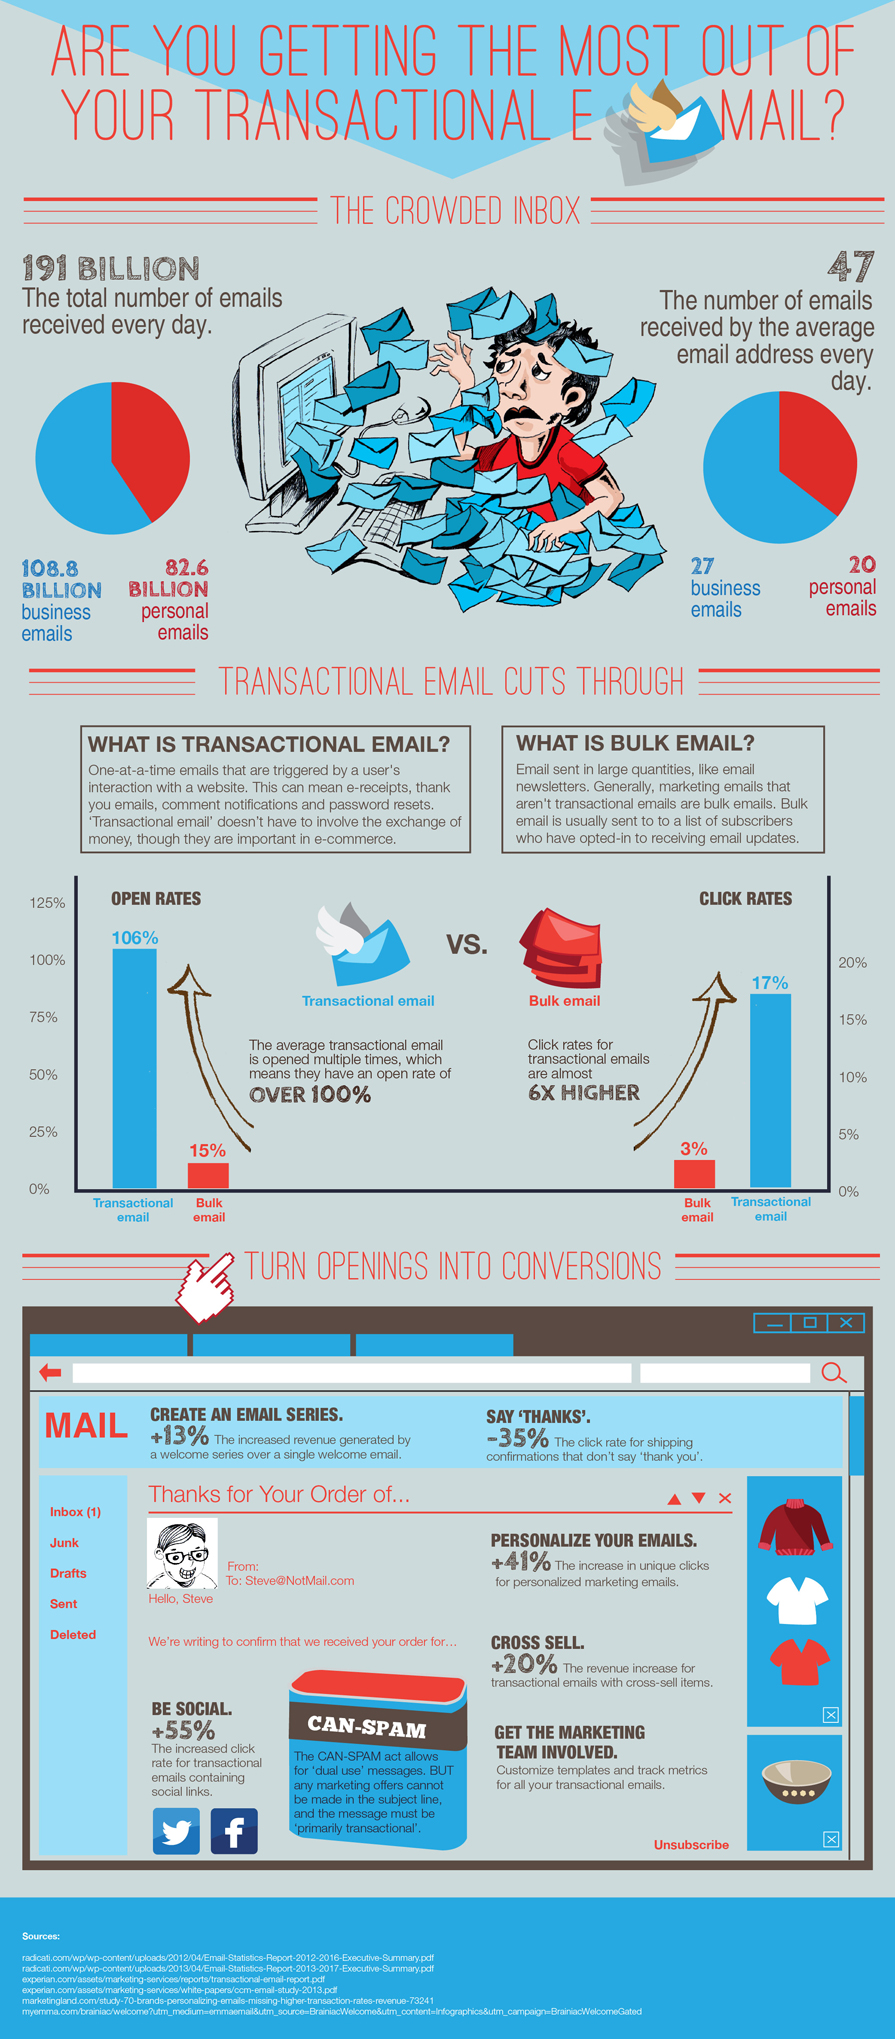 Are You Getting the Most Out of Your Transactional Email